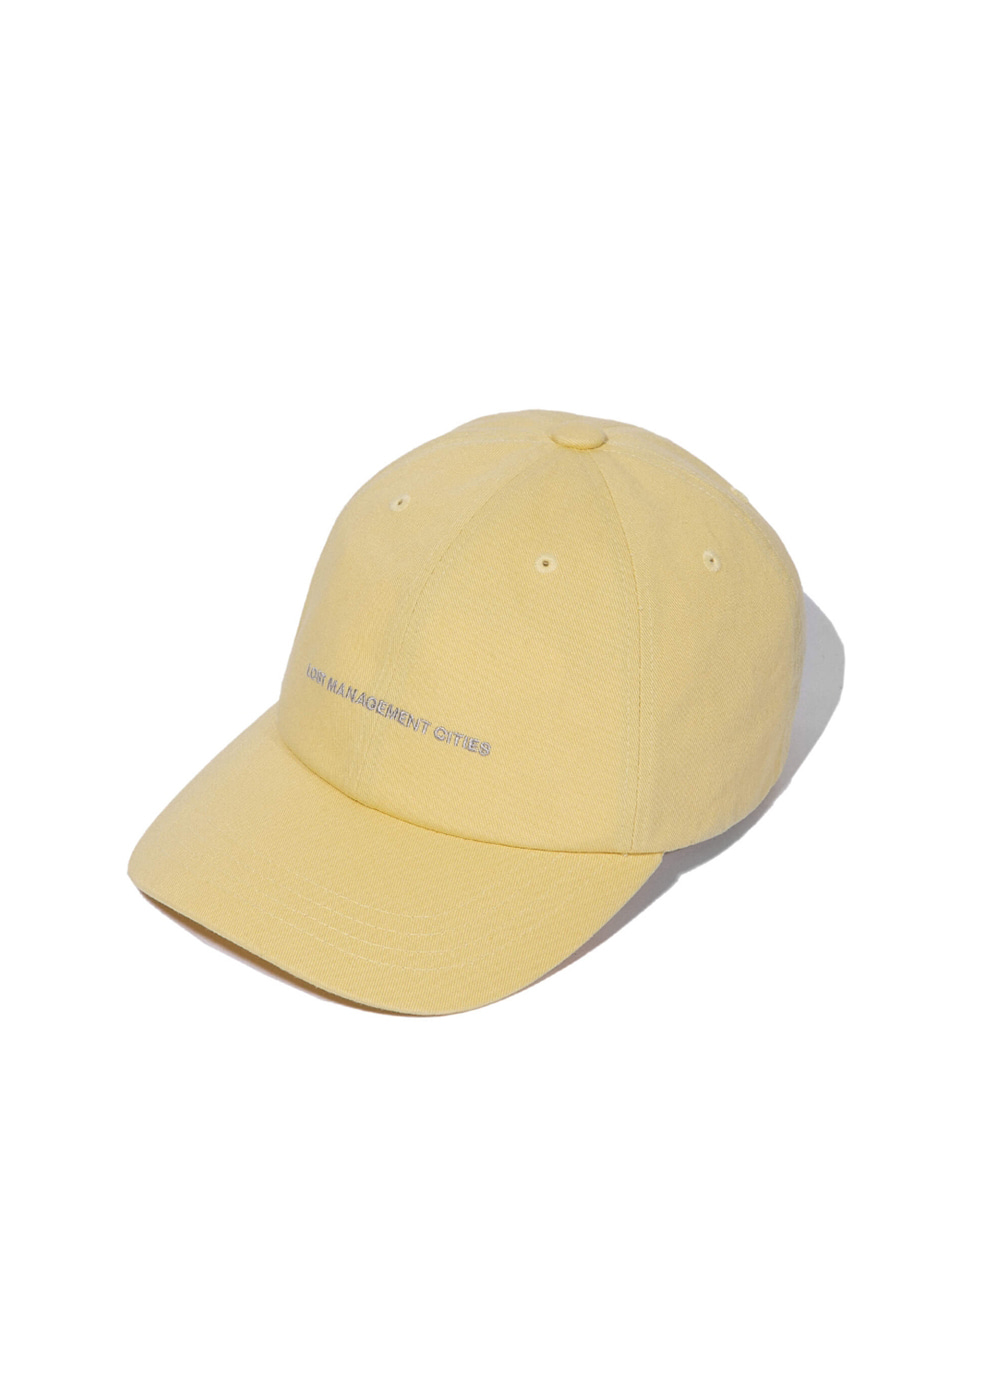 LMC CAPITAL LOGO 6 PANEL CAP yellow